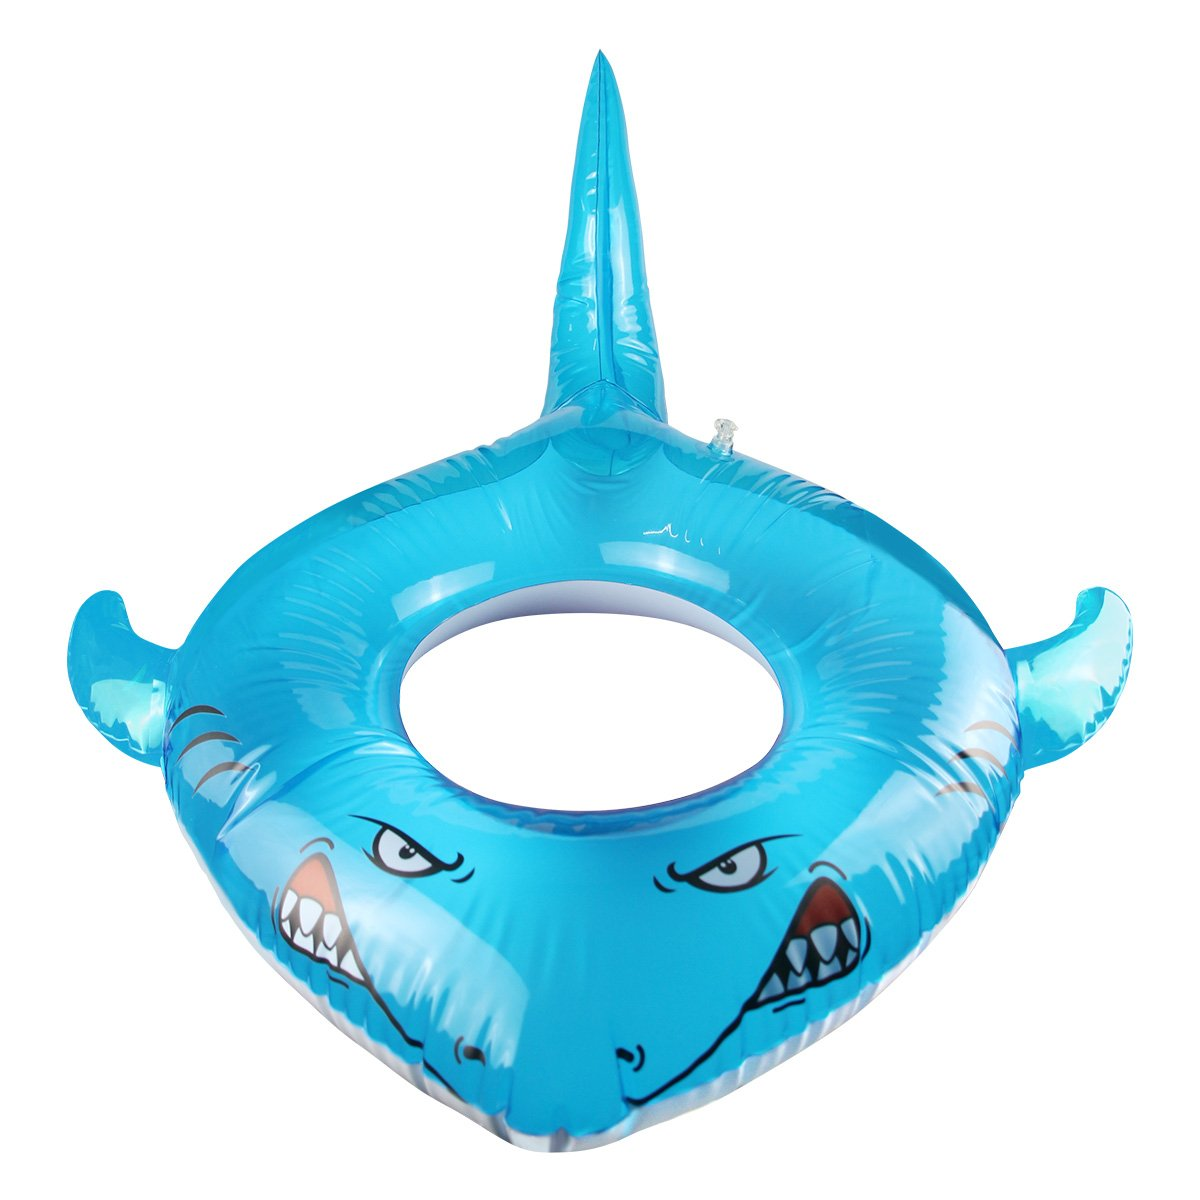 LAFALA Pool Floats Toys Swimming Ring Inflatable Pool Swim Tube Shark Lounger Raft Summer Swimming Pool Toys Perfect for Kids or adults